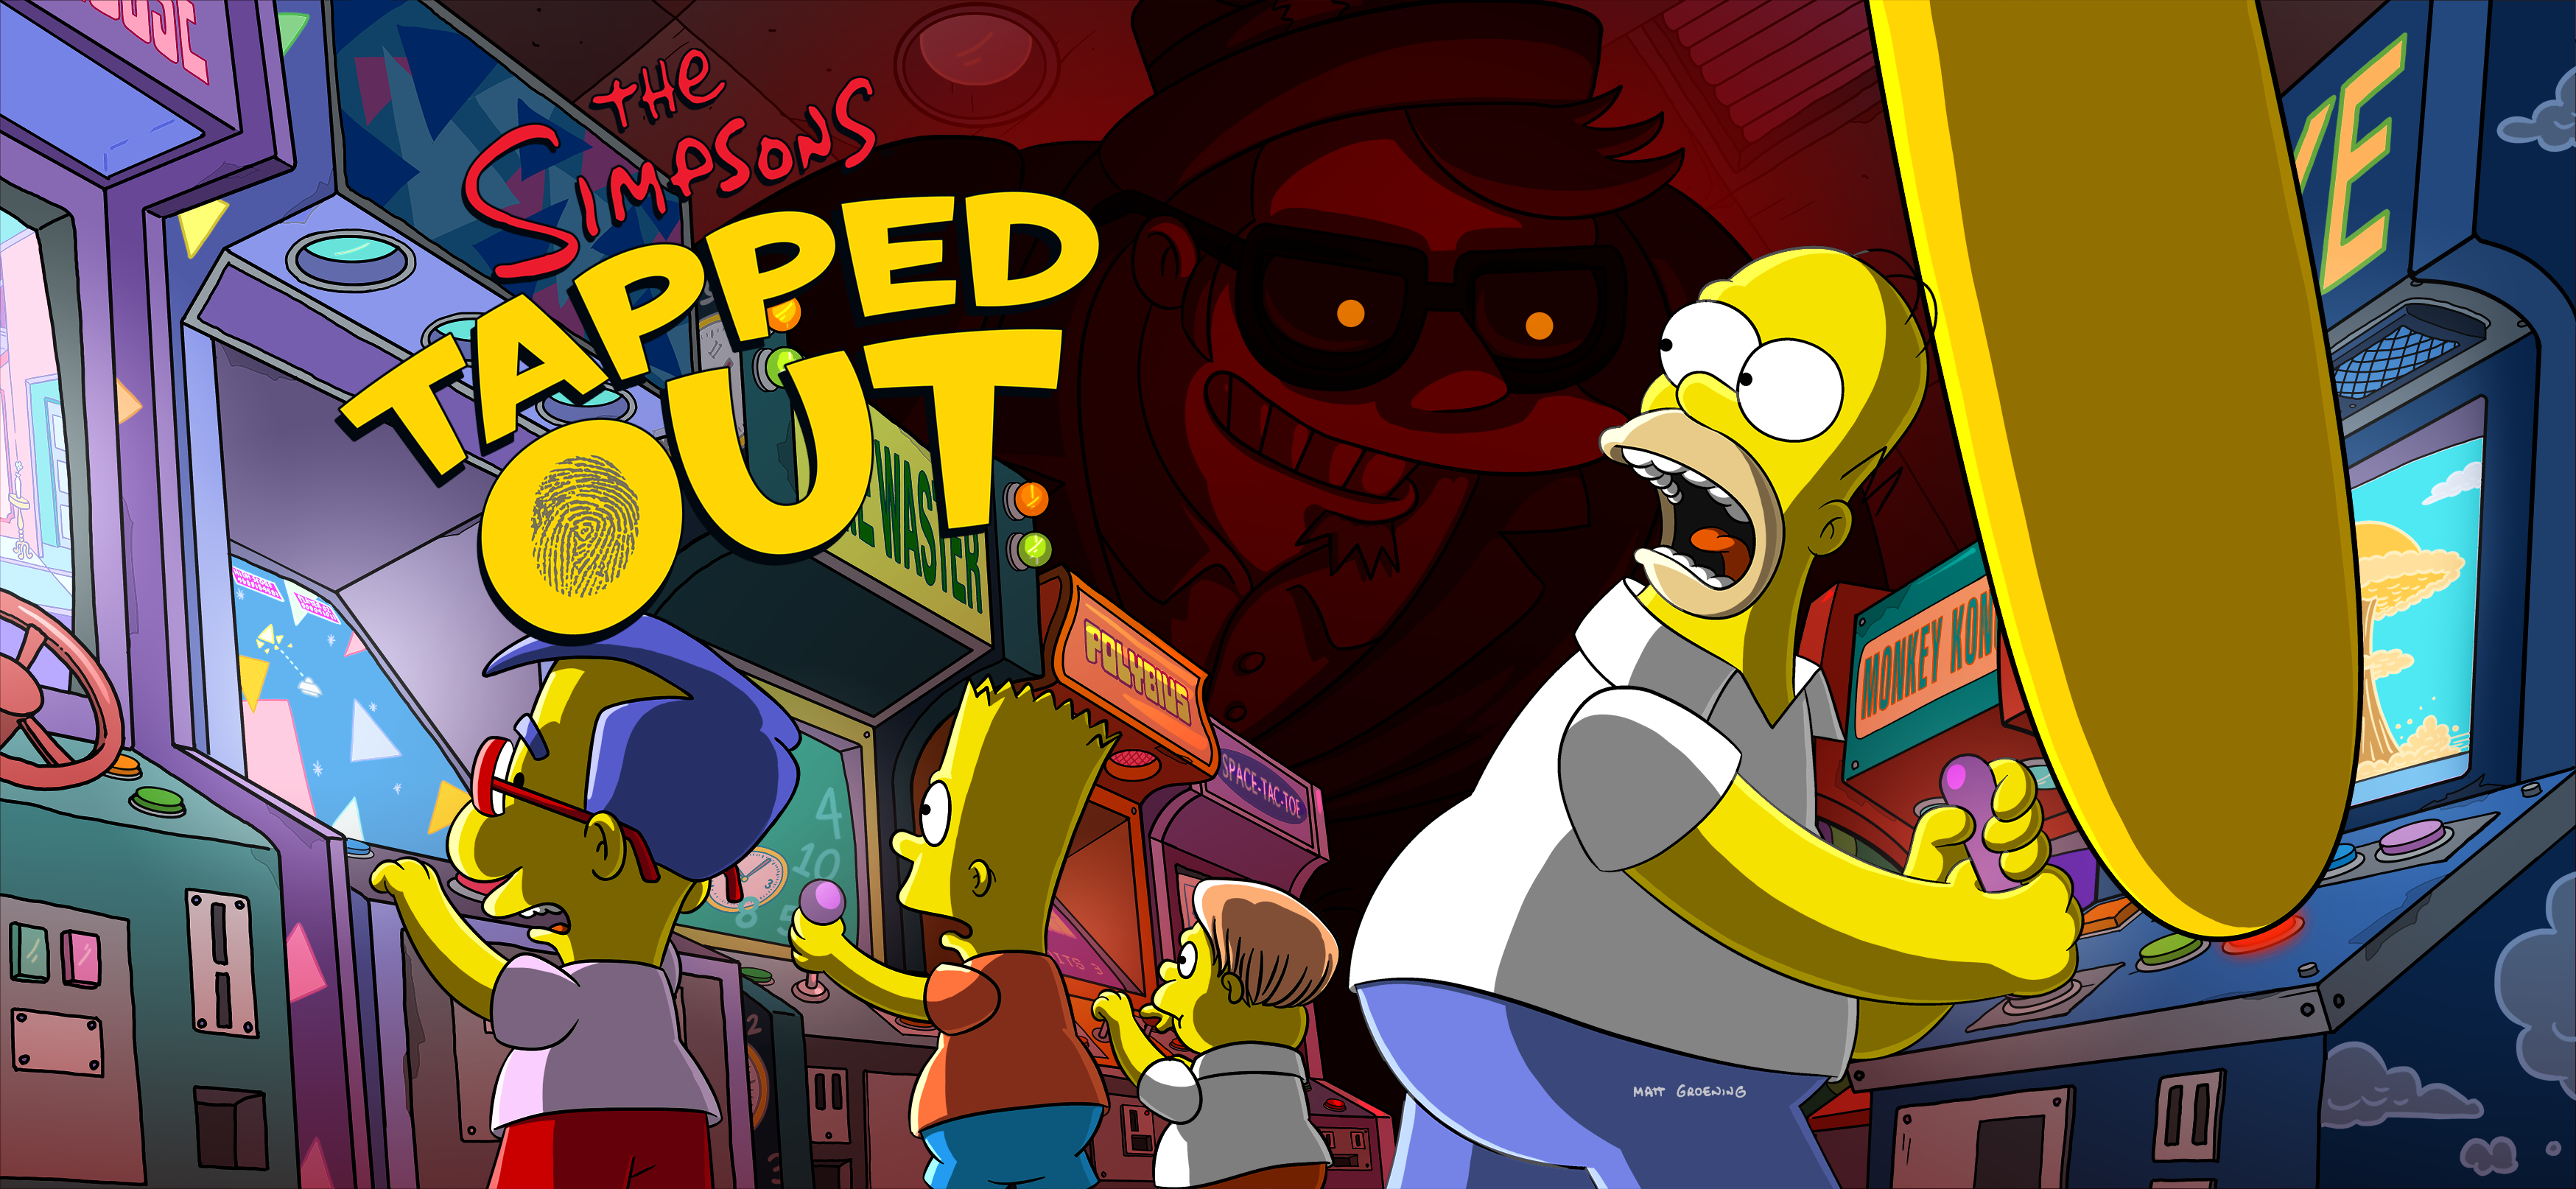 Character Starts Simpsons Tapped Out Halloween 2020 Game of Games The Sequel 2020 Event | The Simpsons: Tapped Out